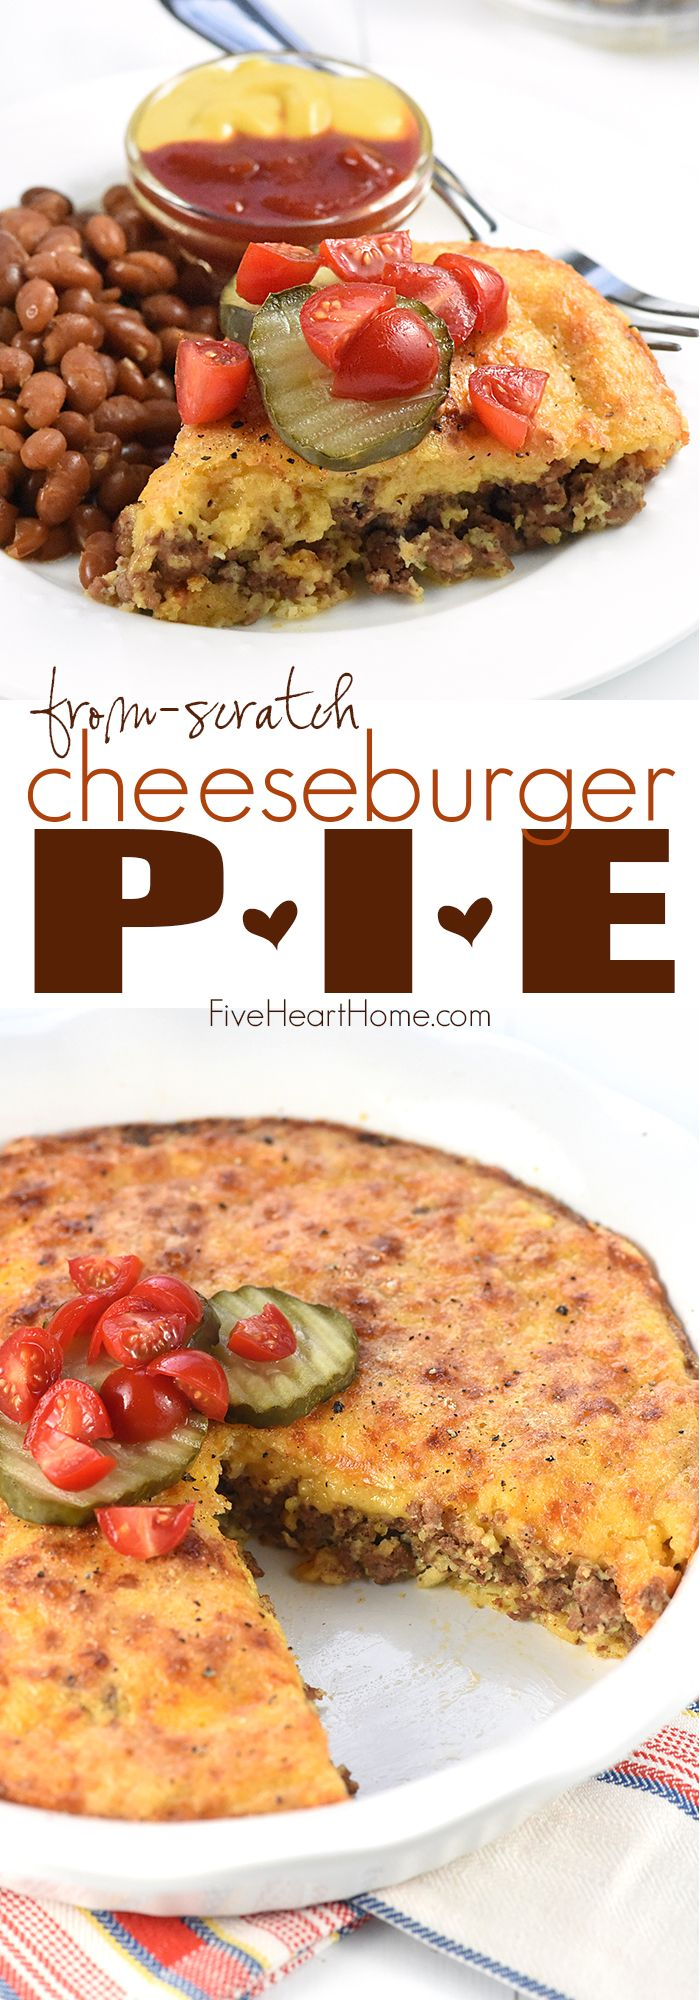 From-Scratch Cheeseburger Pie ~ this classic recipe gets a wholesome, real food twist with seasoned ground beef, grated cheddar cheese, and a topping made with whole wheat flour instead of Bisquick! | FiveHeartHome.com